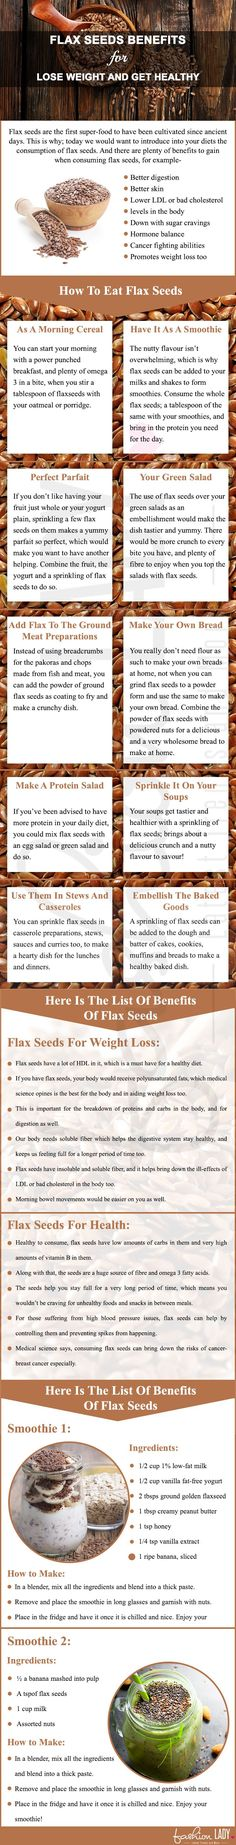 11 Flax Seeds Benefits For Lose Weight And Get Healthy